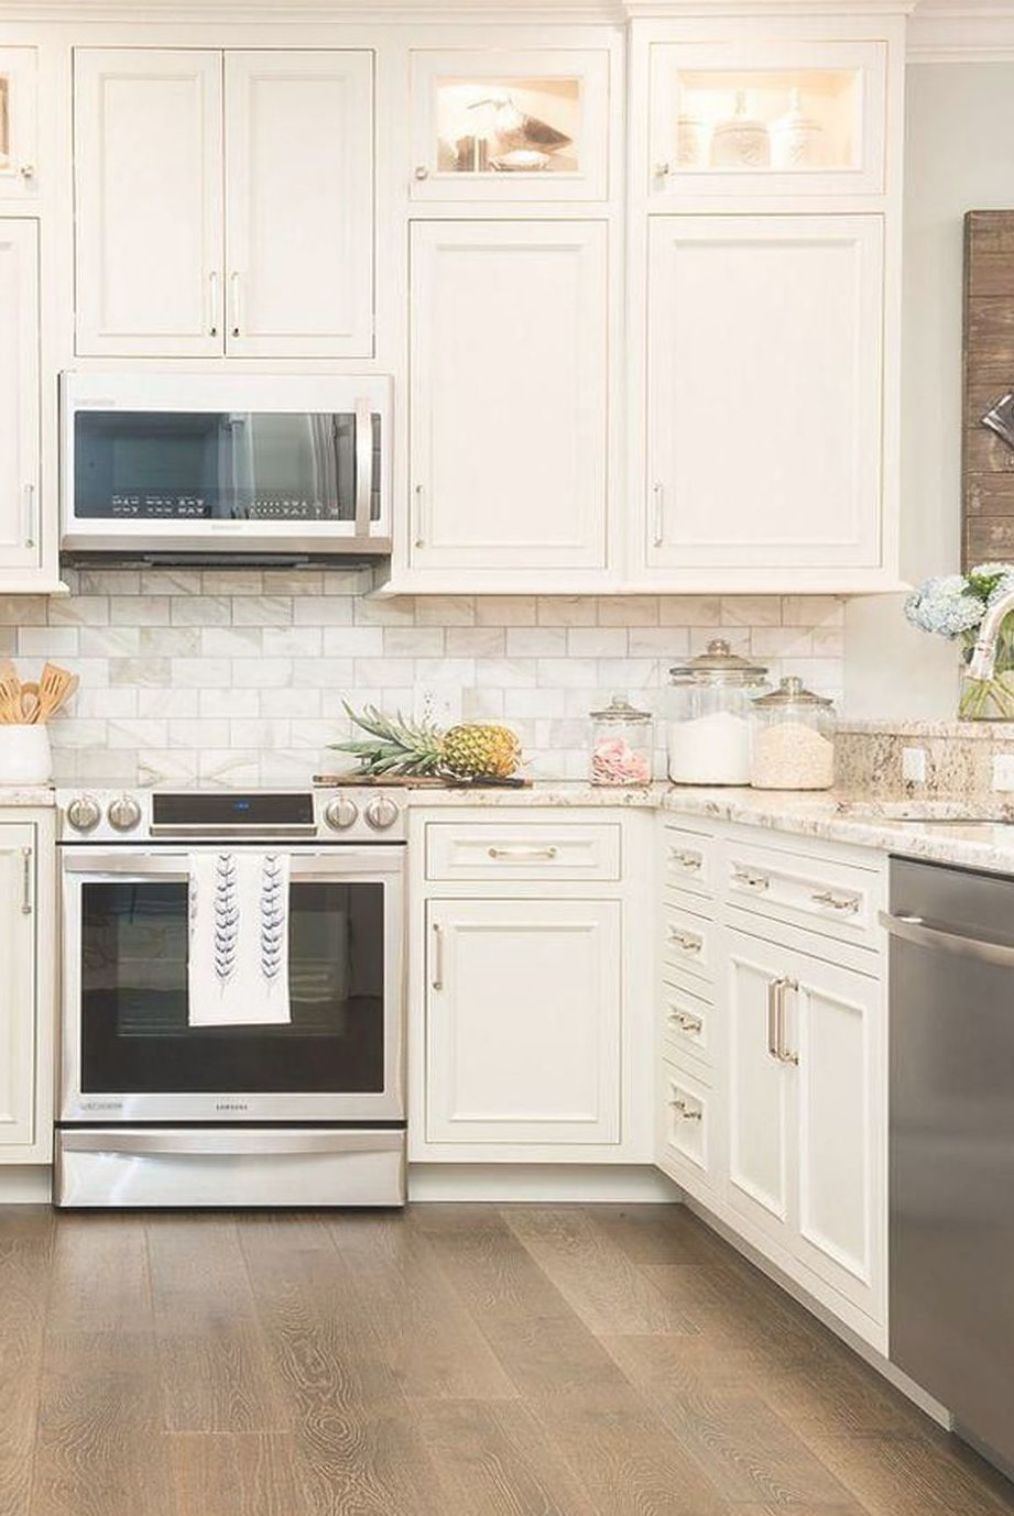 Pin By Anne Edited On Kitchen In 2020 Off White Kitchens Off White Kitchen Cabinets New Kitchen Cabinets